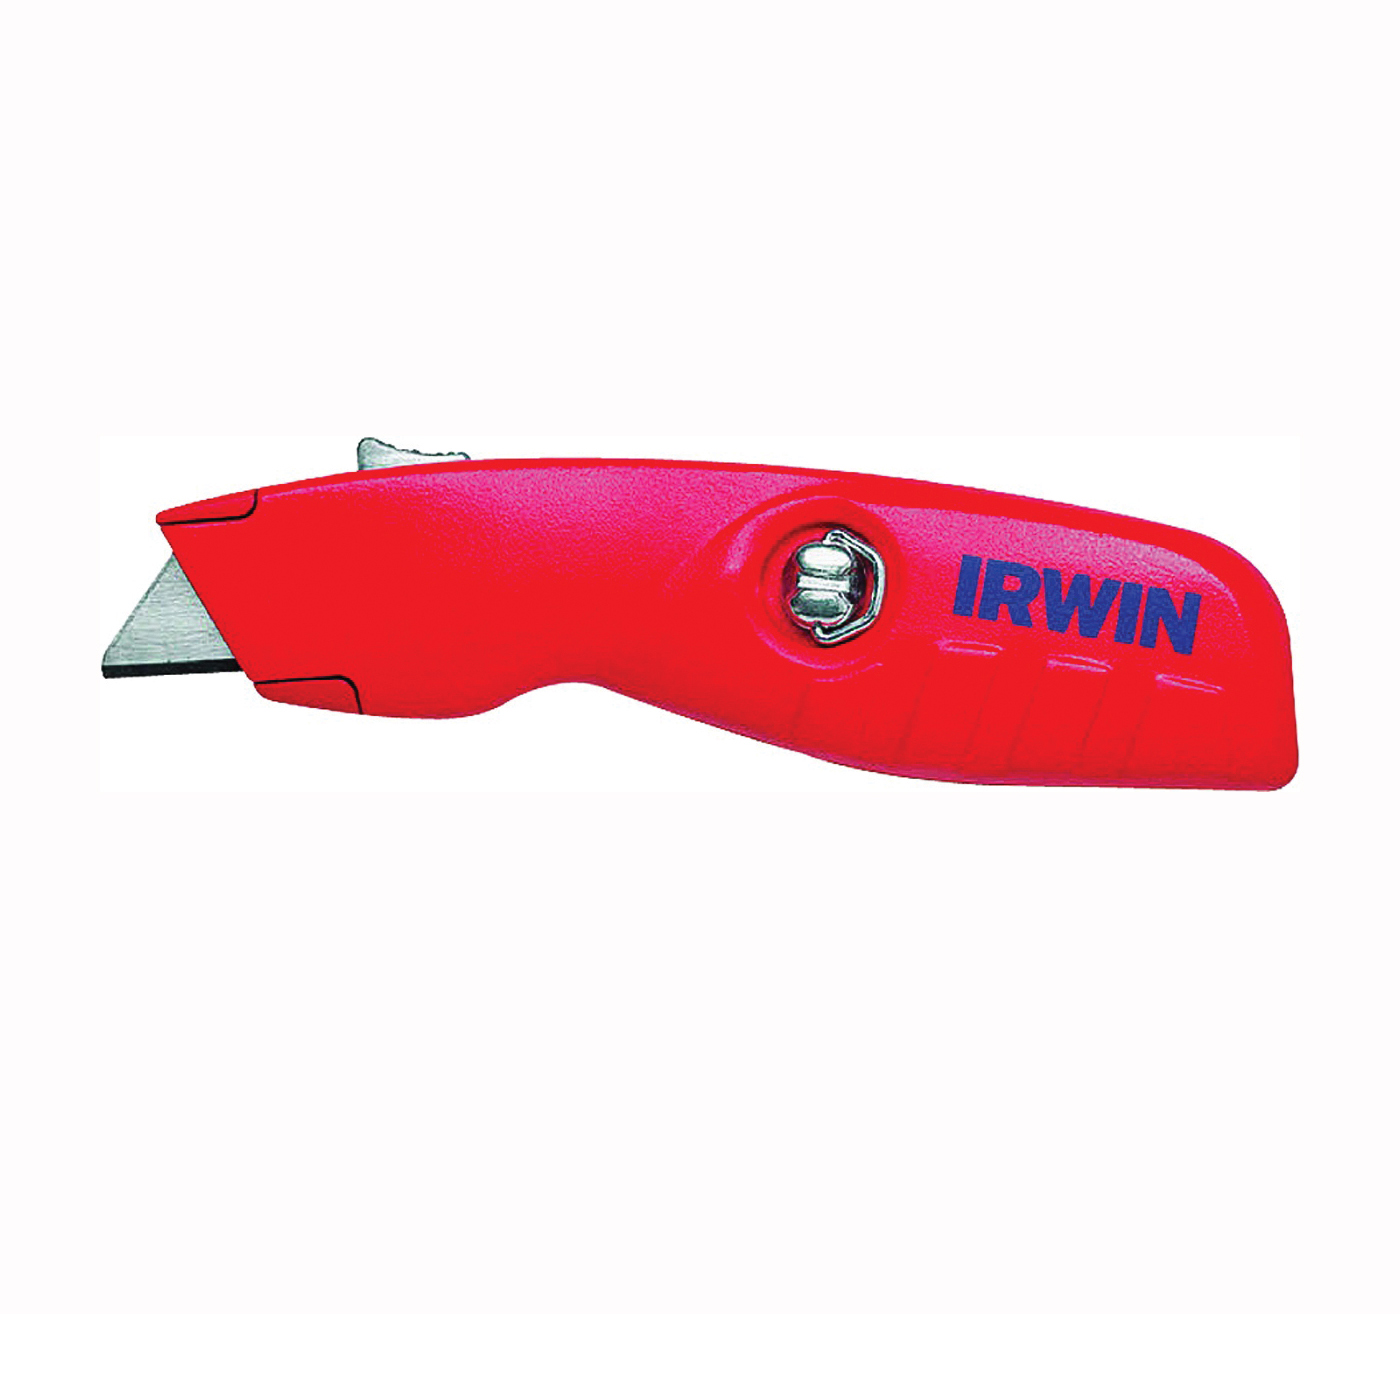 Picture of IRWIN 2088600 Utility Knife, 1-1/2 in W Blade, Bi-Metal Blade, Contour-Grip Handle, Red Handle